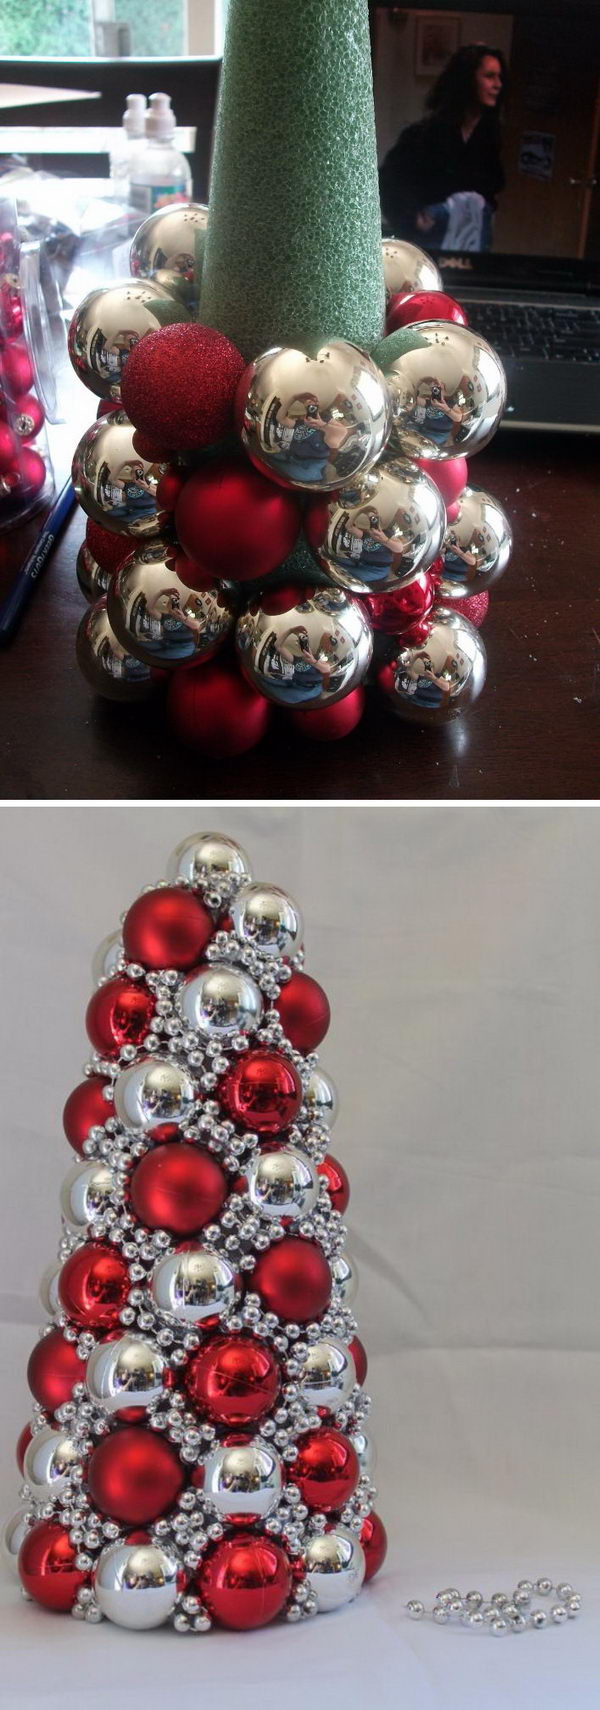 20 great ways to decorate your home with christmas ornaments for Diy christmas decorations for your home